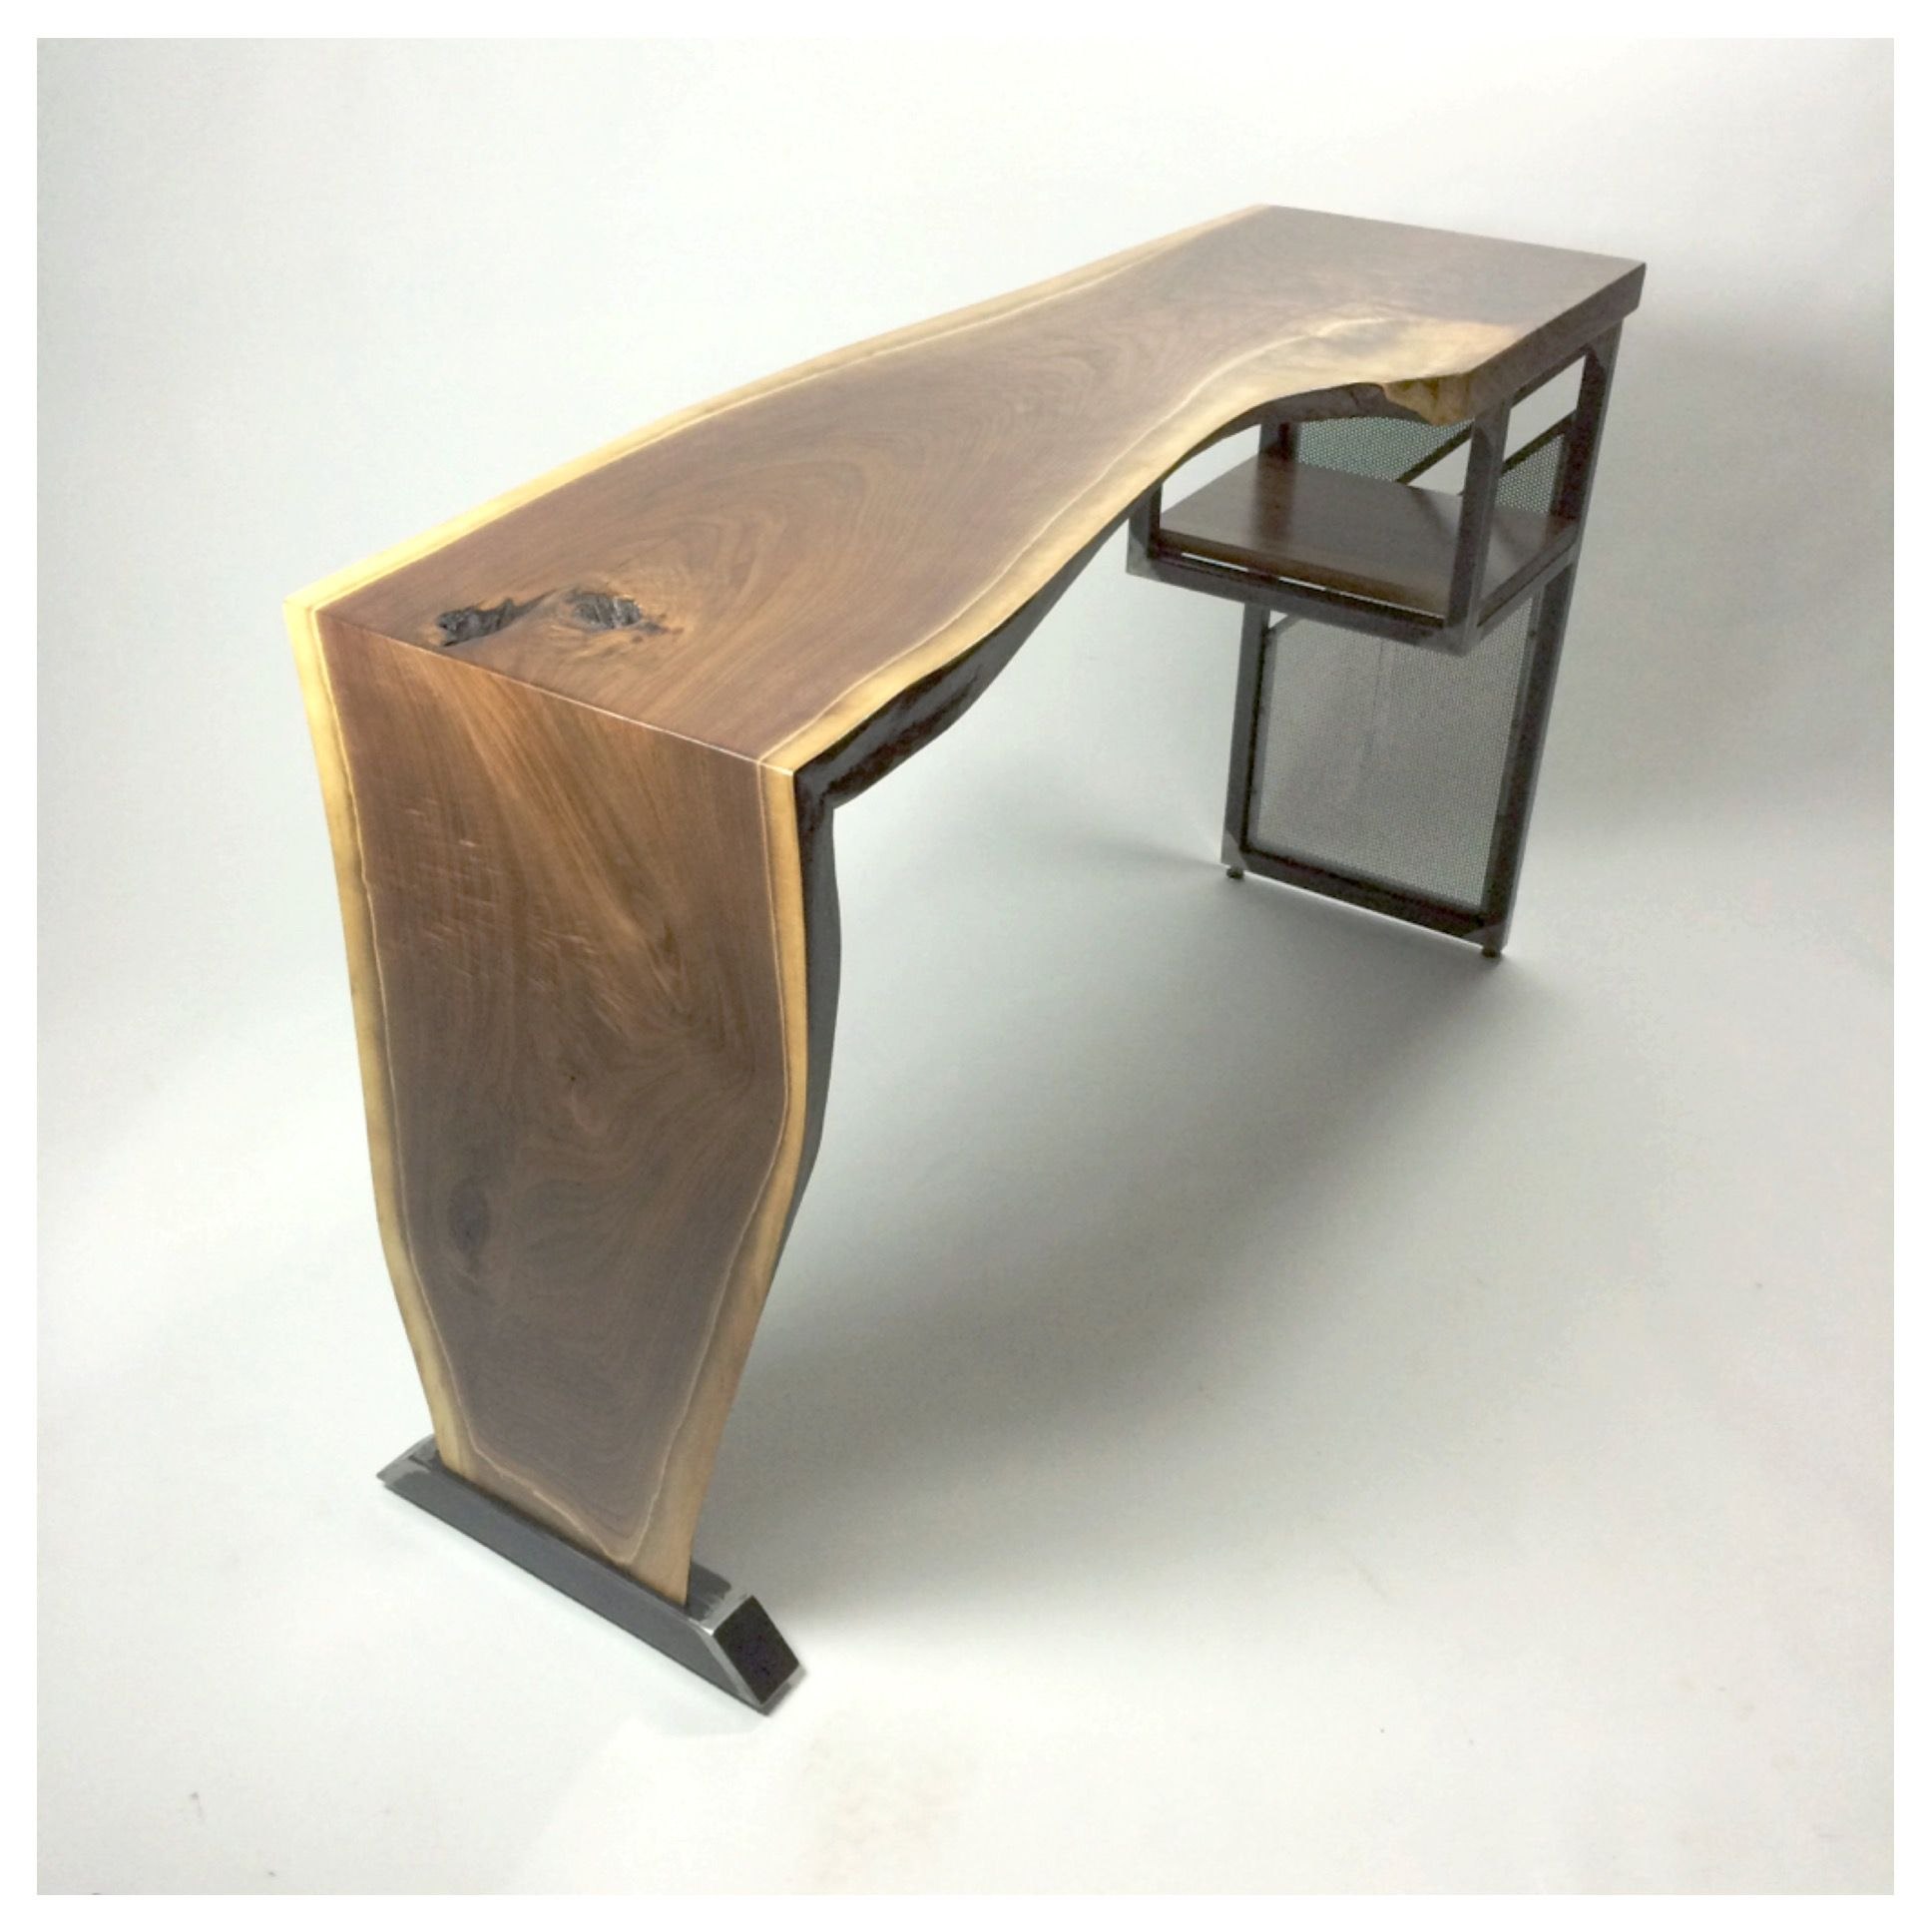 Live Edge Waterfall Desk Modern Steel Wood By Joseph Cauvel